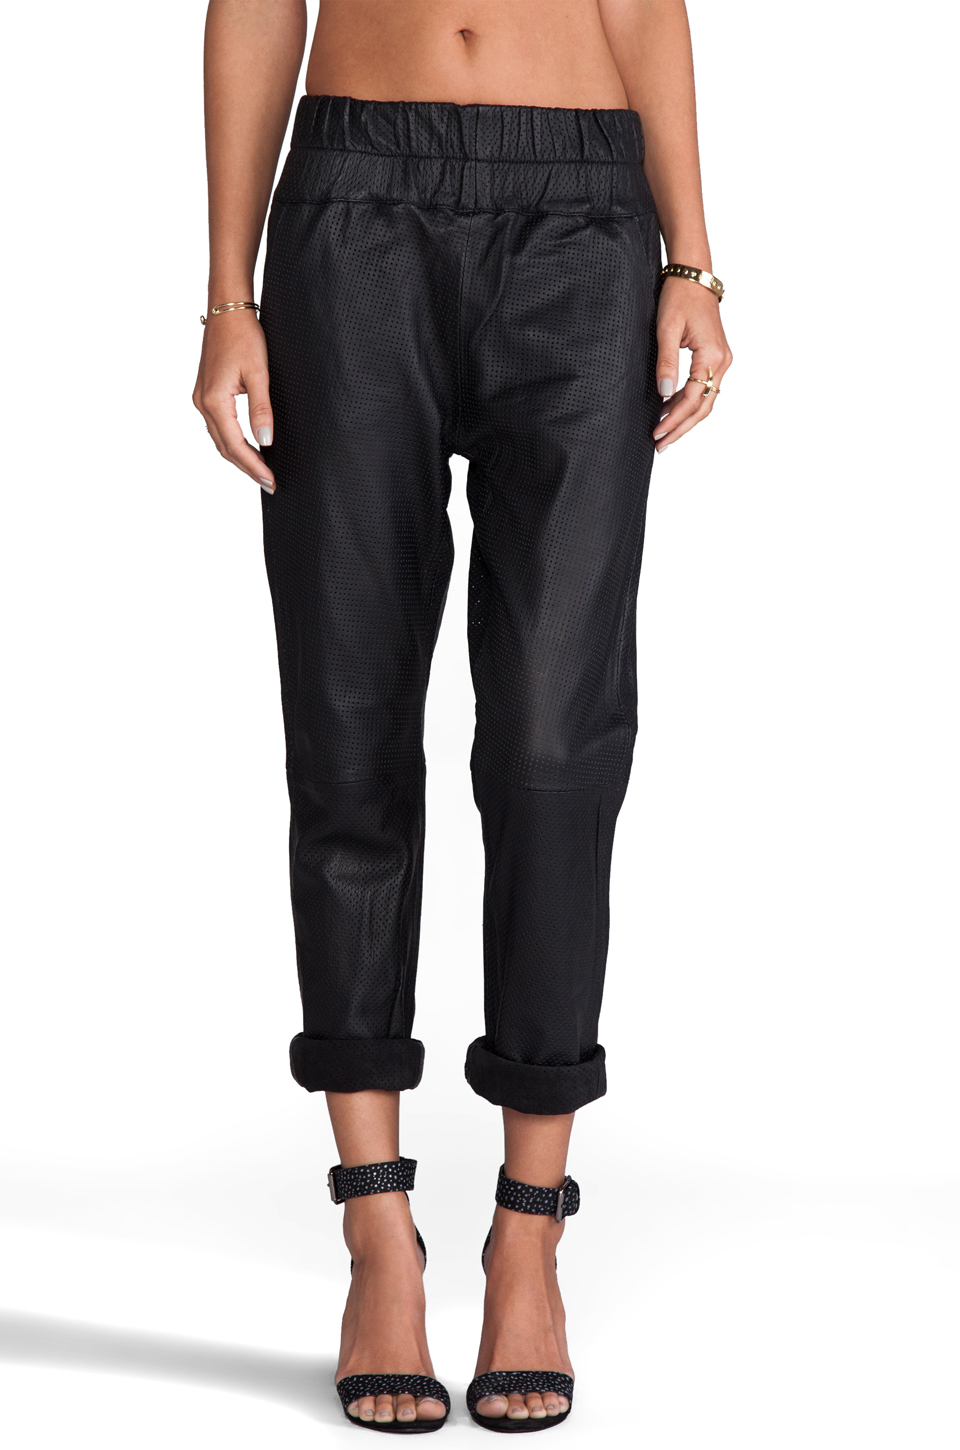 Friend of Mine Boxer Leather Track Pants in Black | REVOLVE